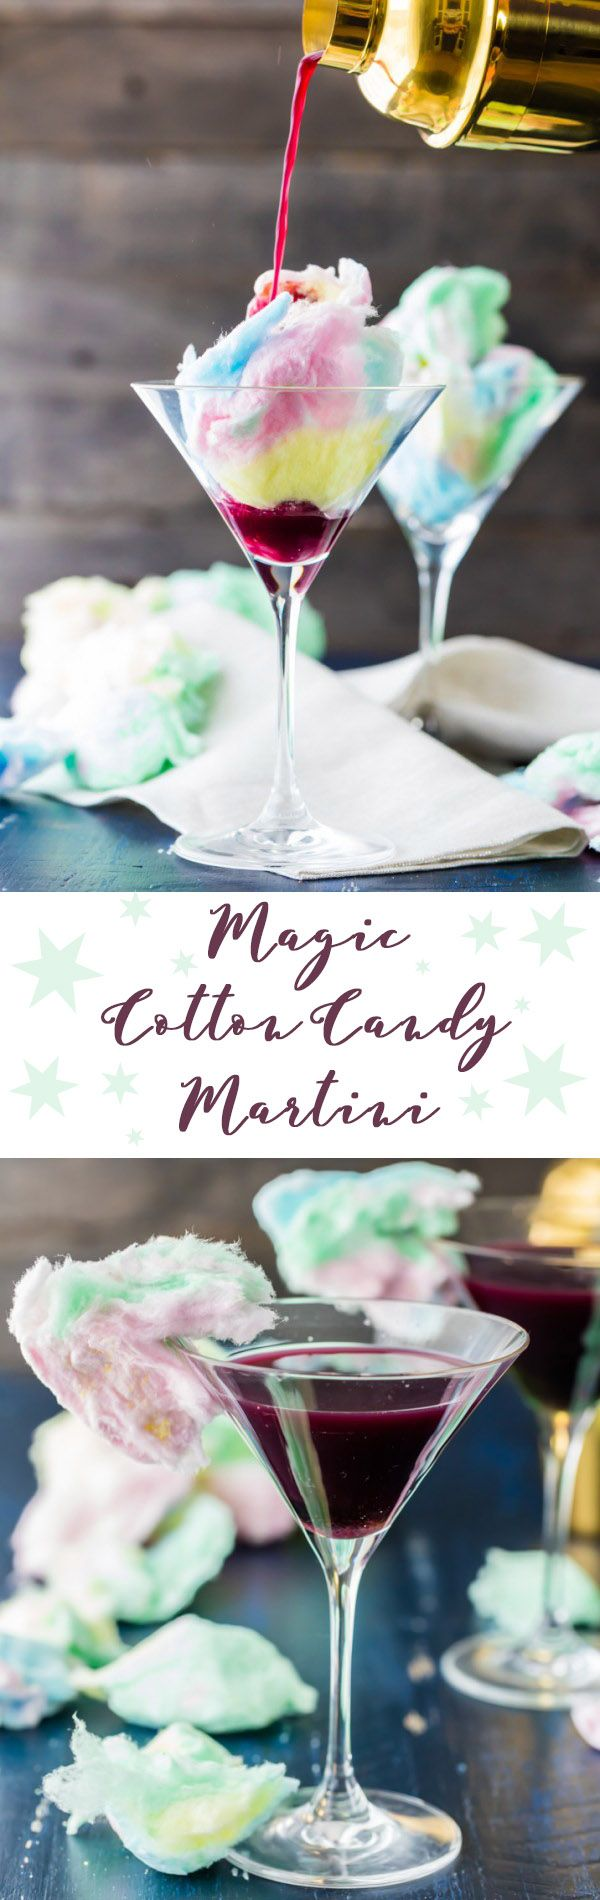 Wow! The Magic Cotton-Candy Martini is a showstopper! Swap out your regular cocktail syrup for some sweet cotton candy. We promise you won't believe just how cool this is!